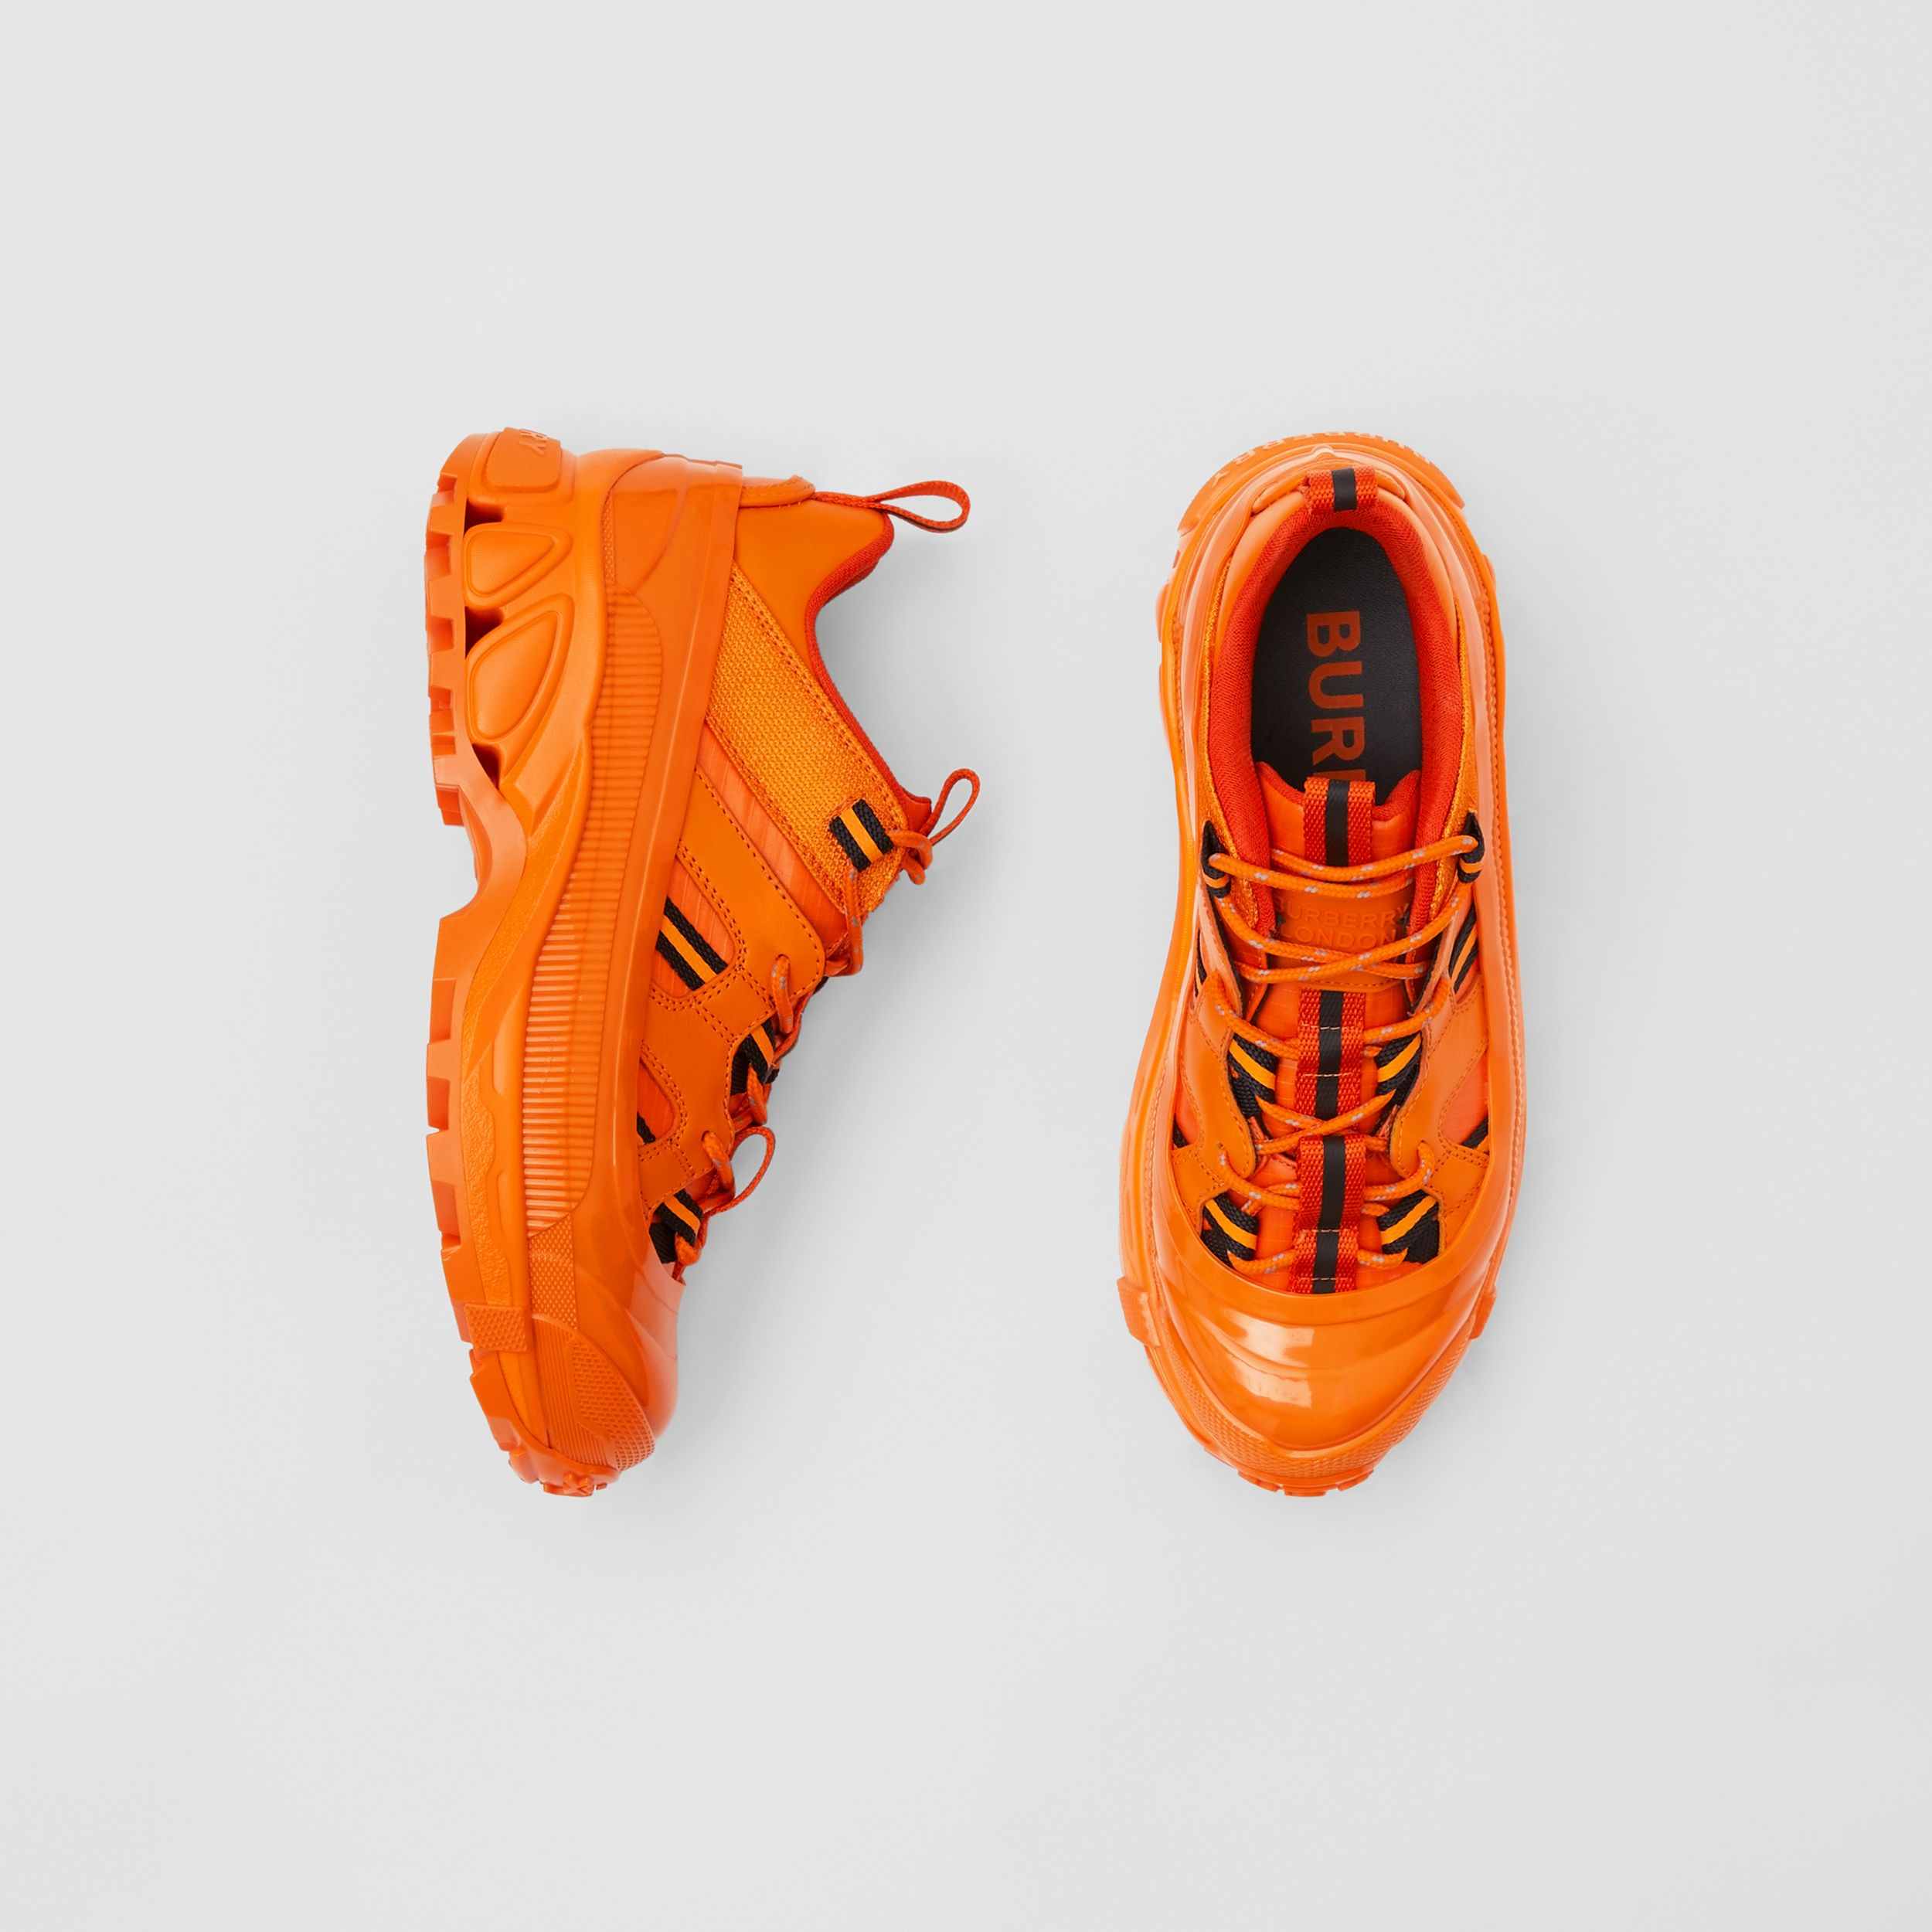 Leather and Nylon Arthur Sneakers in Bright Orange - Women | Burberry - 1